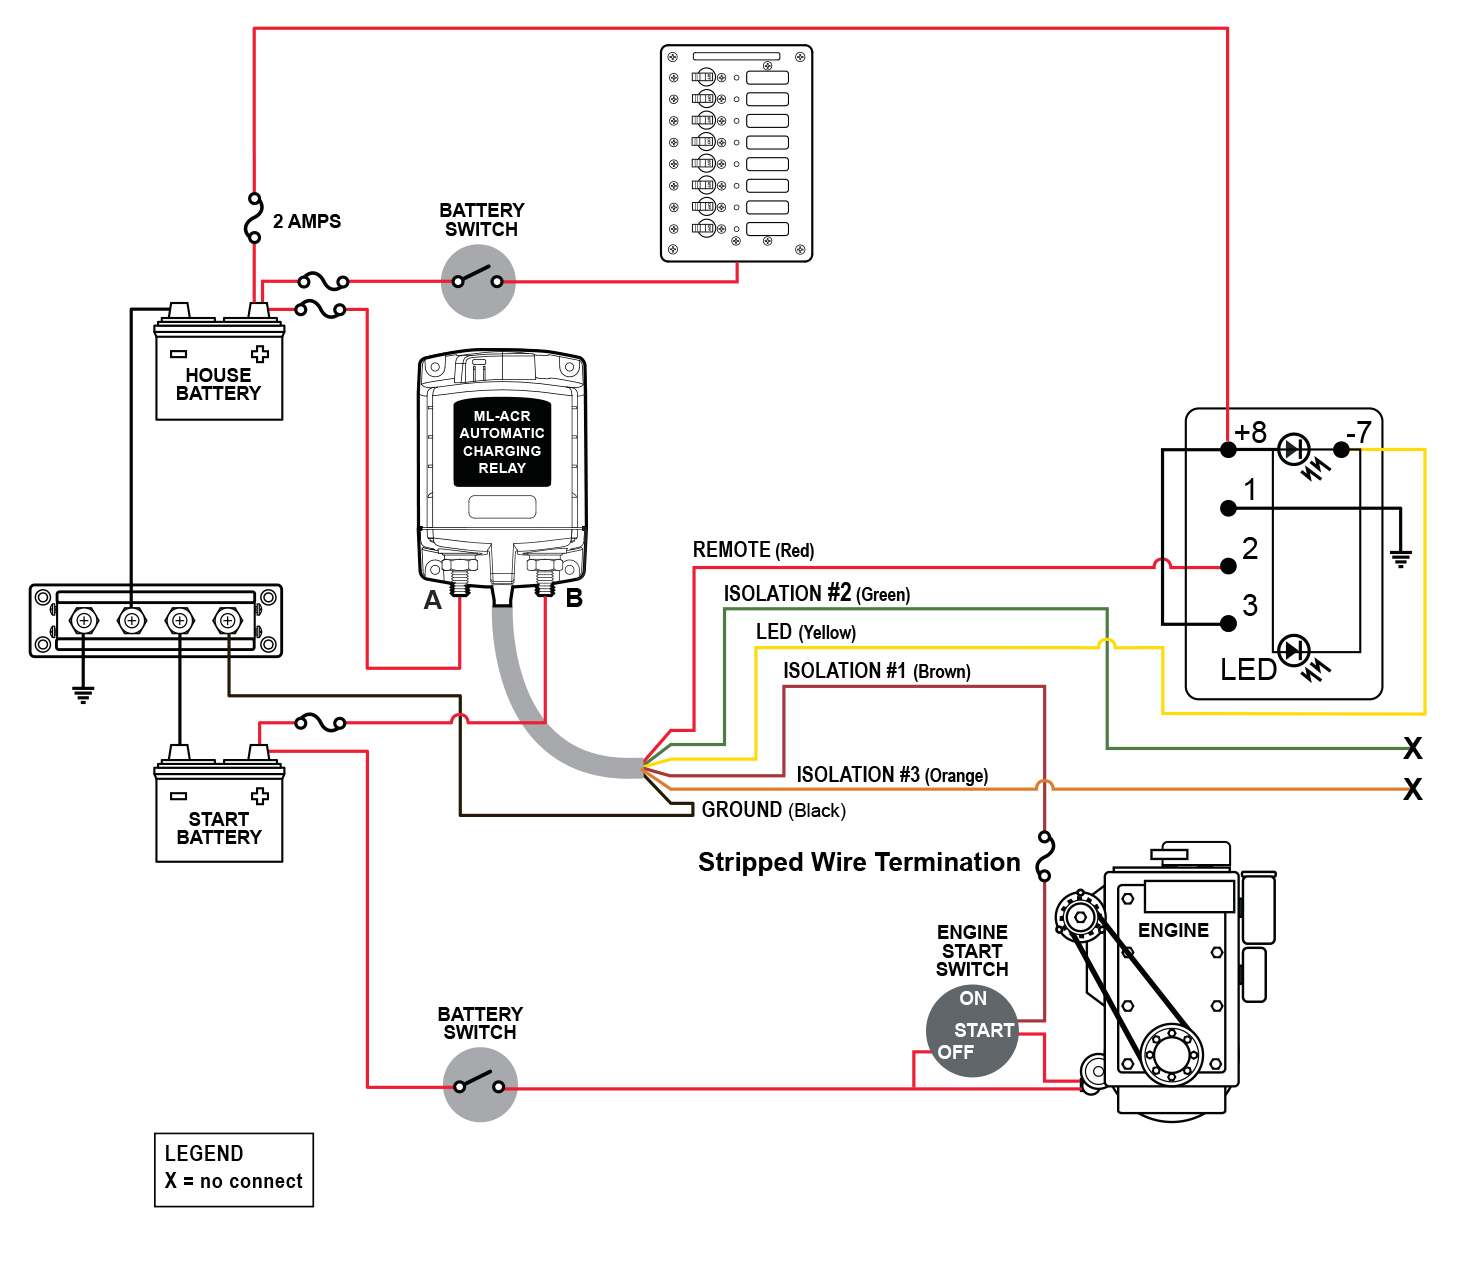 78004 WireDiagram blue sea systems wiring diagram blue sea systems add a battery  at panicattacktreatment.co